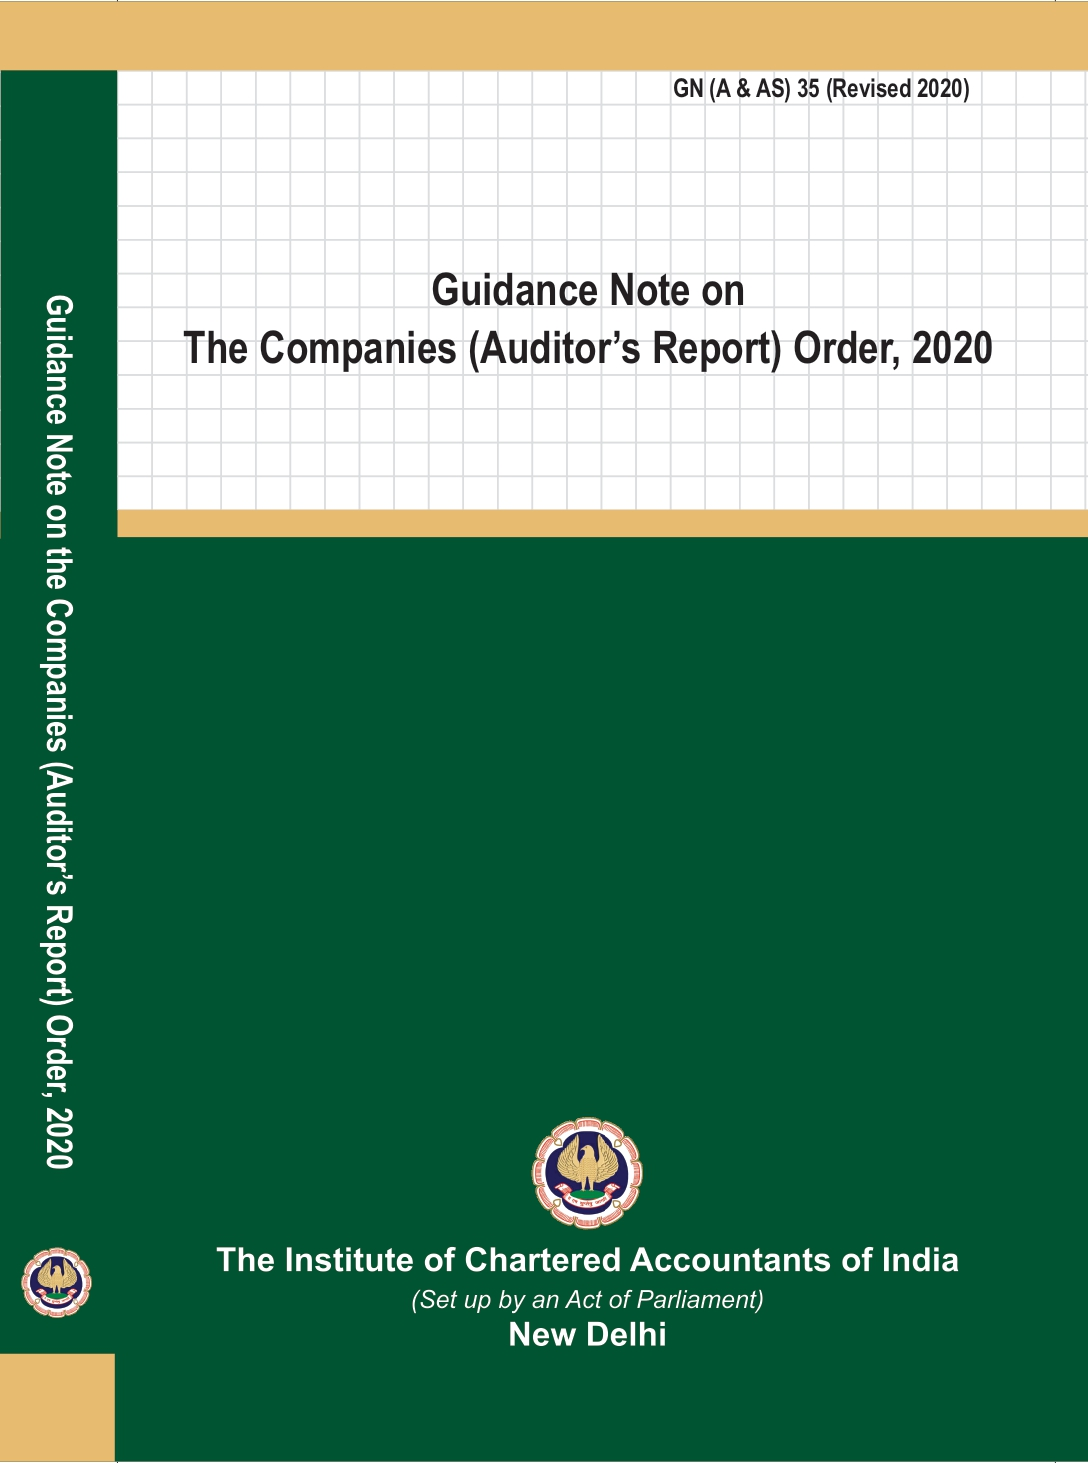 Guidance Note on The Companies (Auditor's Report) Order, 2020 (June, 2020)